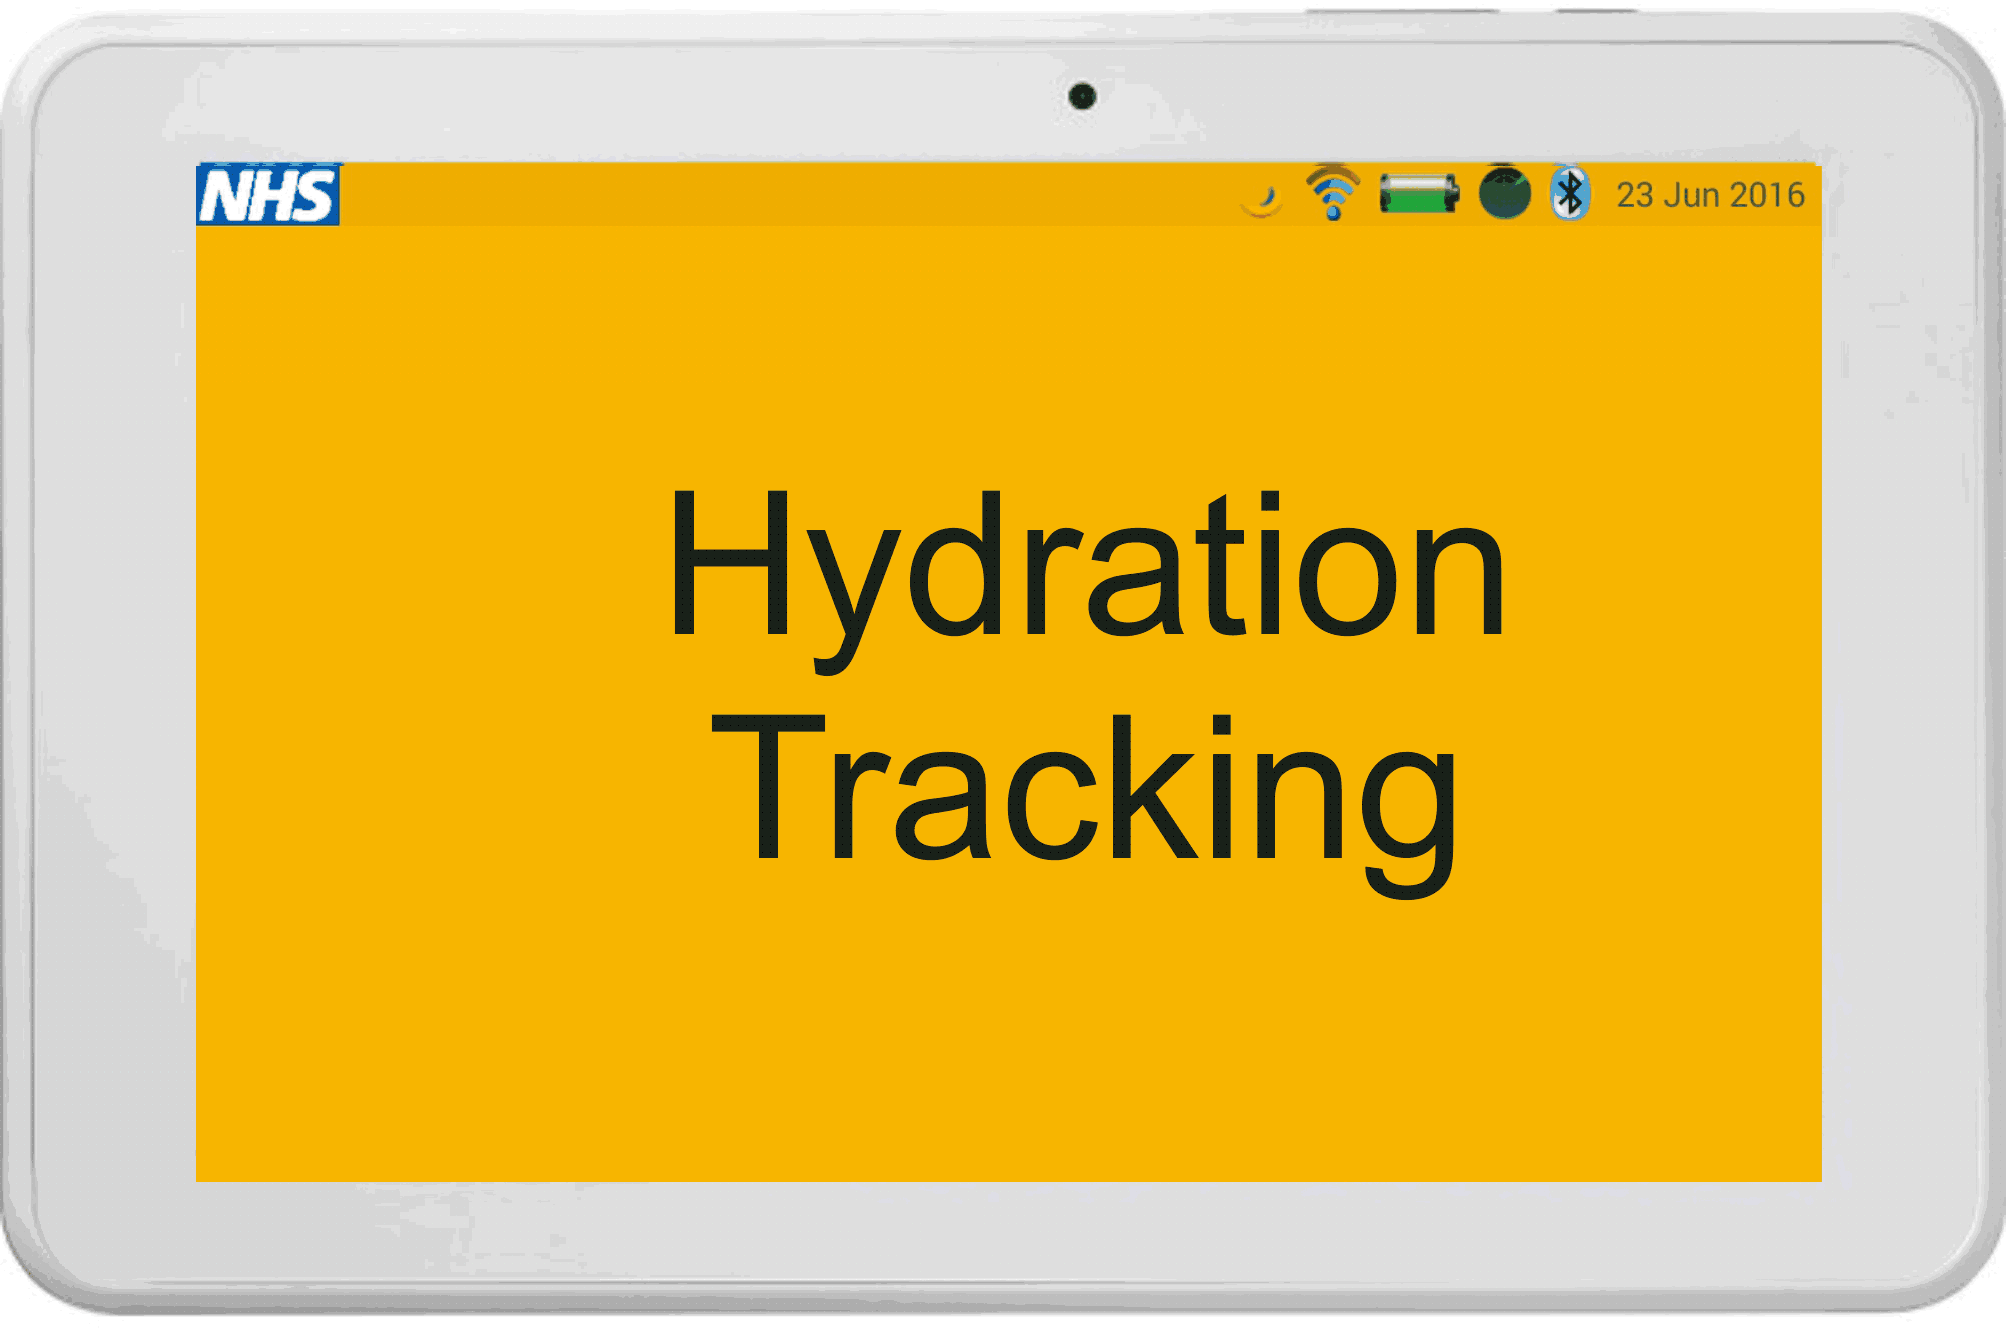 Hydration Tracking